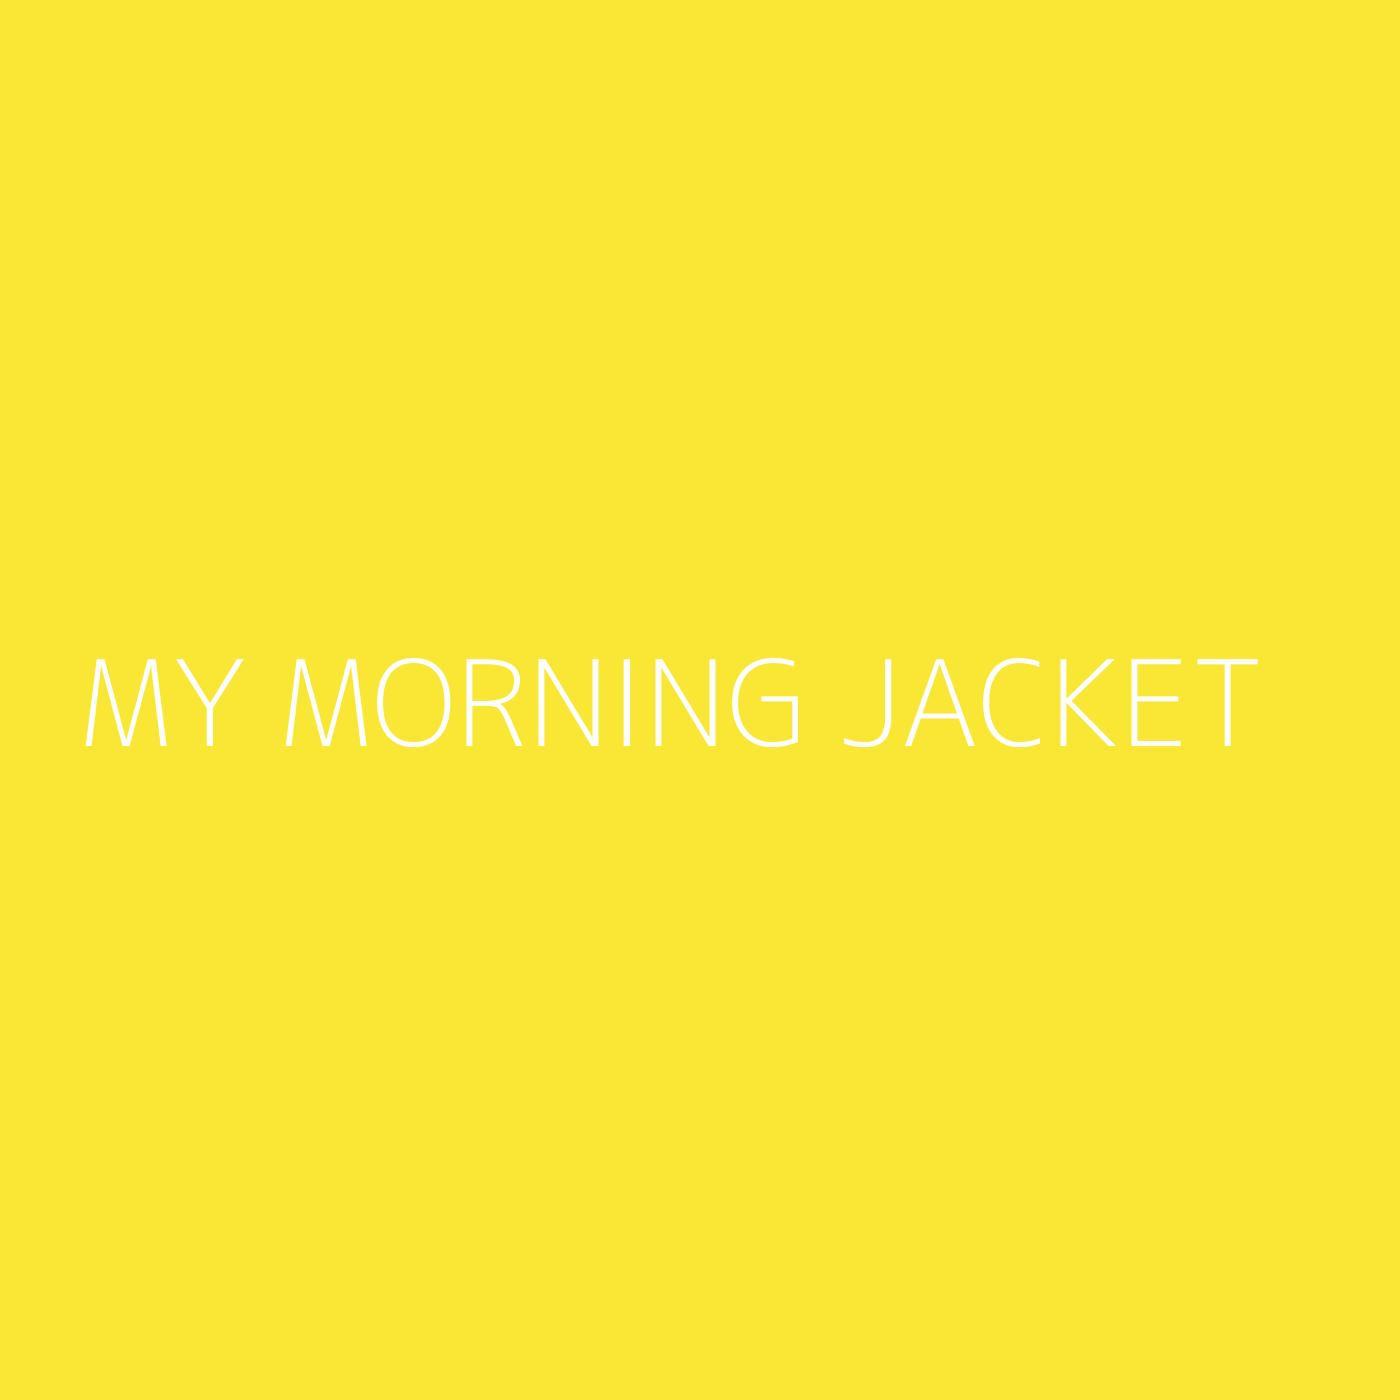 My Morning Jacket Playlist Artwork